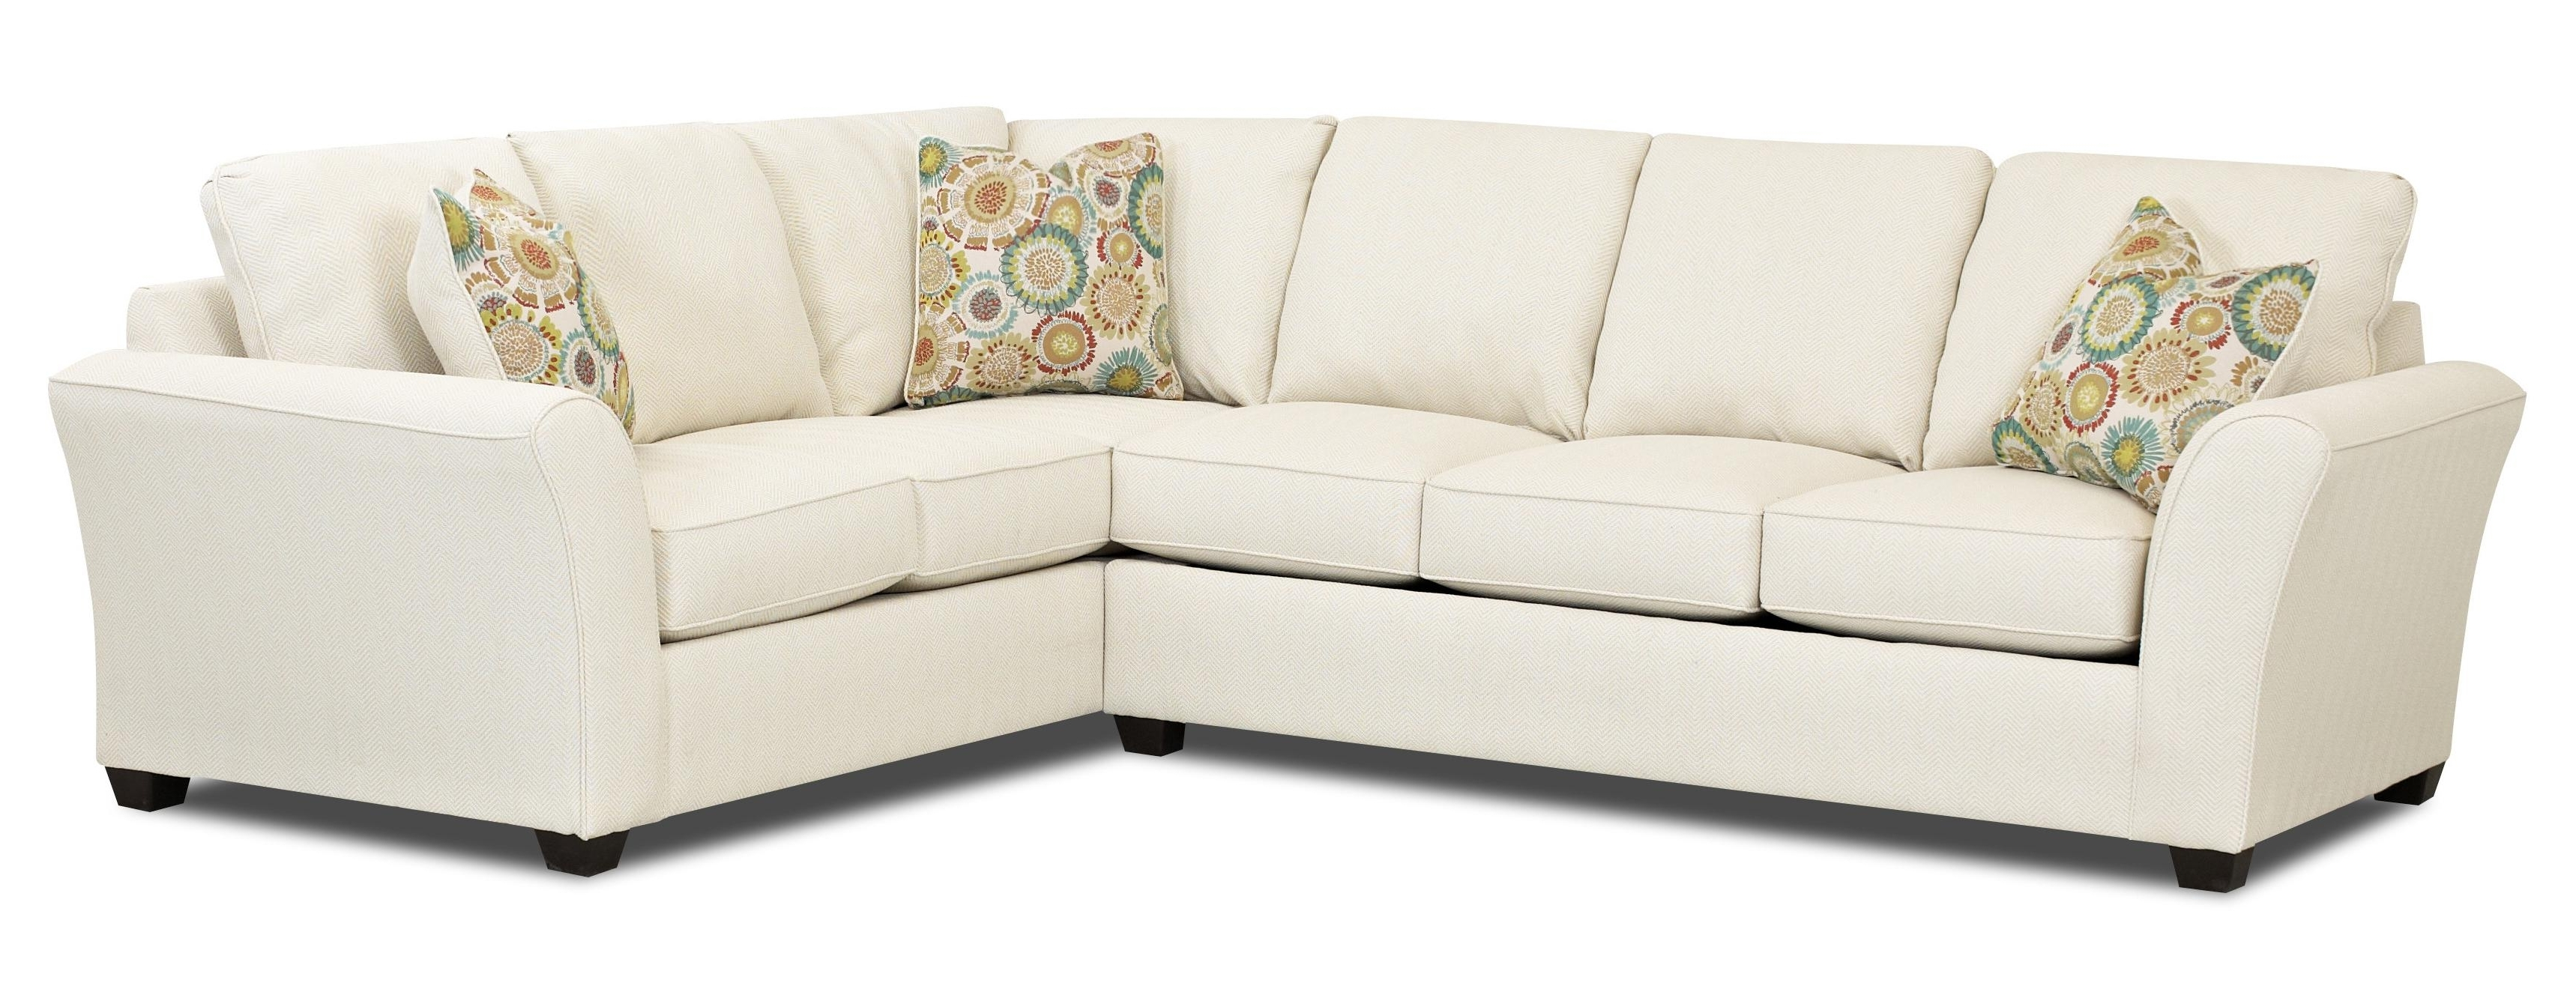 Widely Used Furniture: Comfy Design Of Tempurpedic Sleeper Sofa For Modern Within King Size Sleeper Sofas (View 20 of 20)